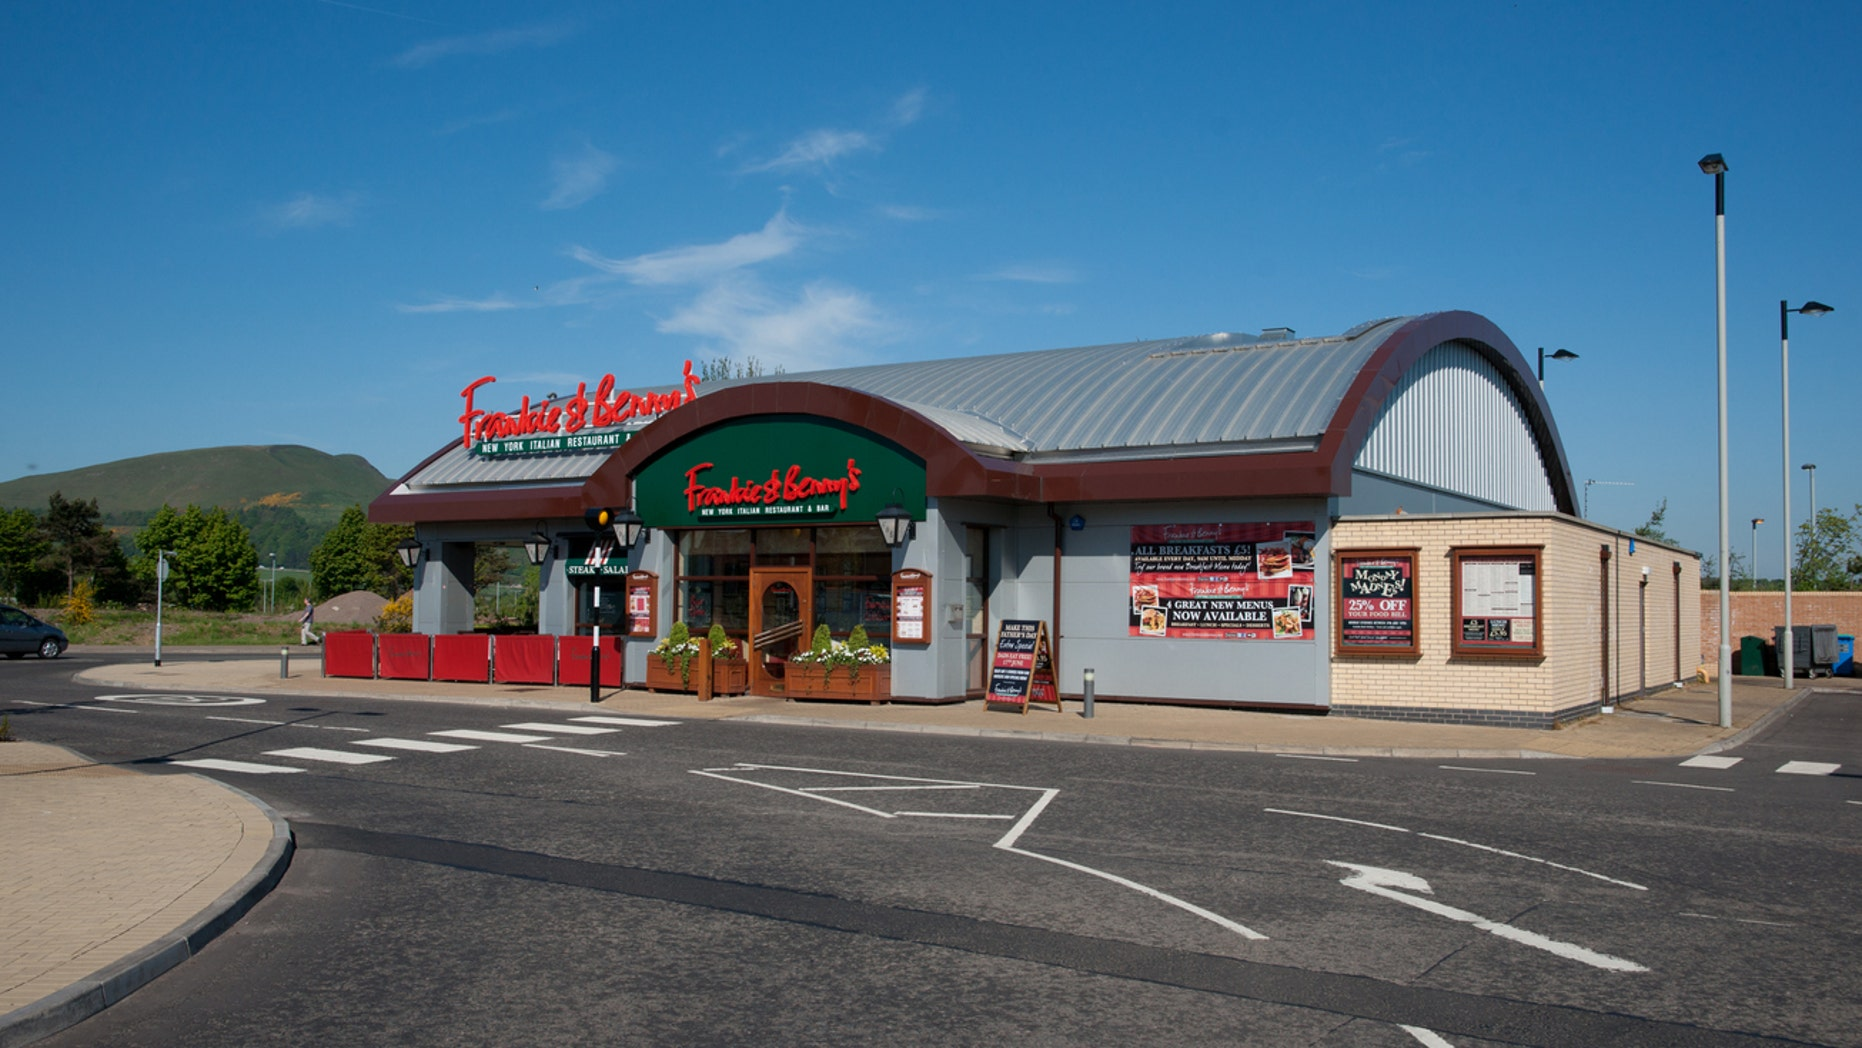 Frankie and Benny's in the UK provide an incentive to free parents from their phones.